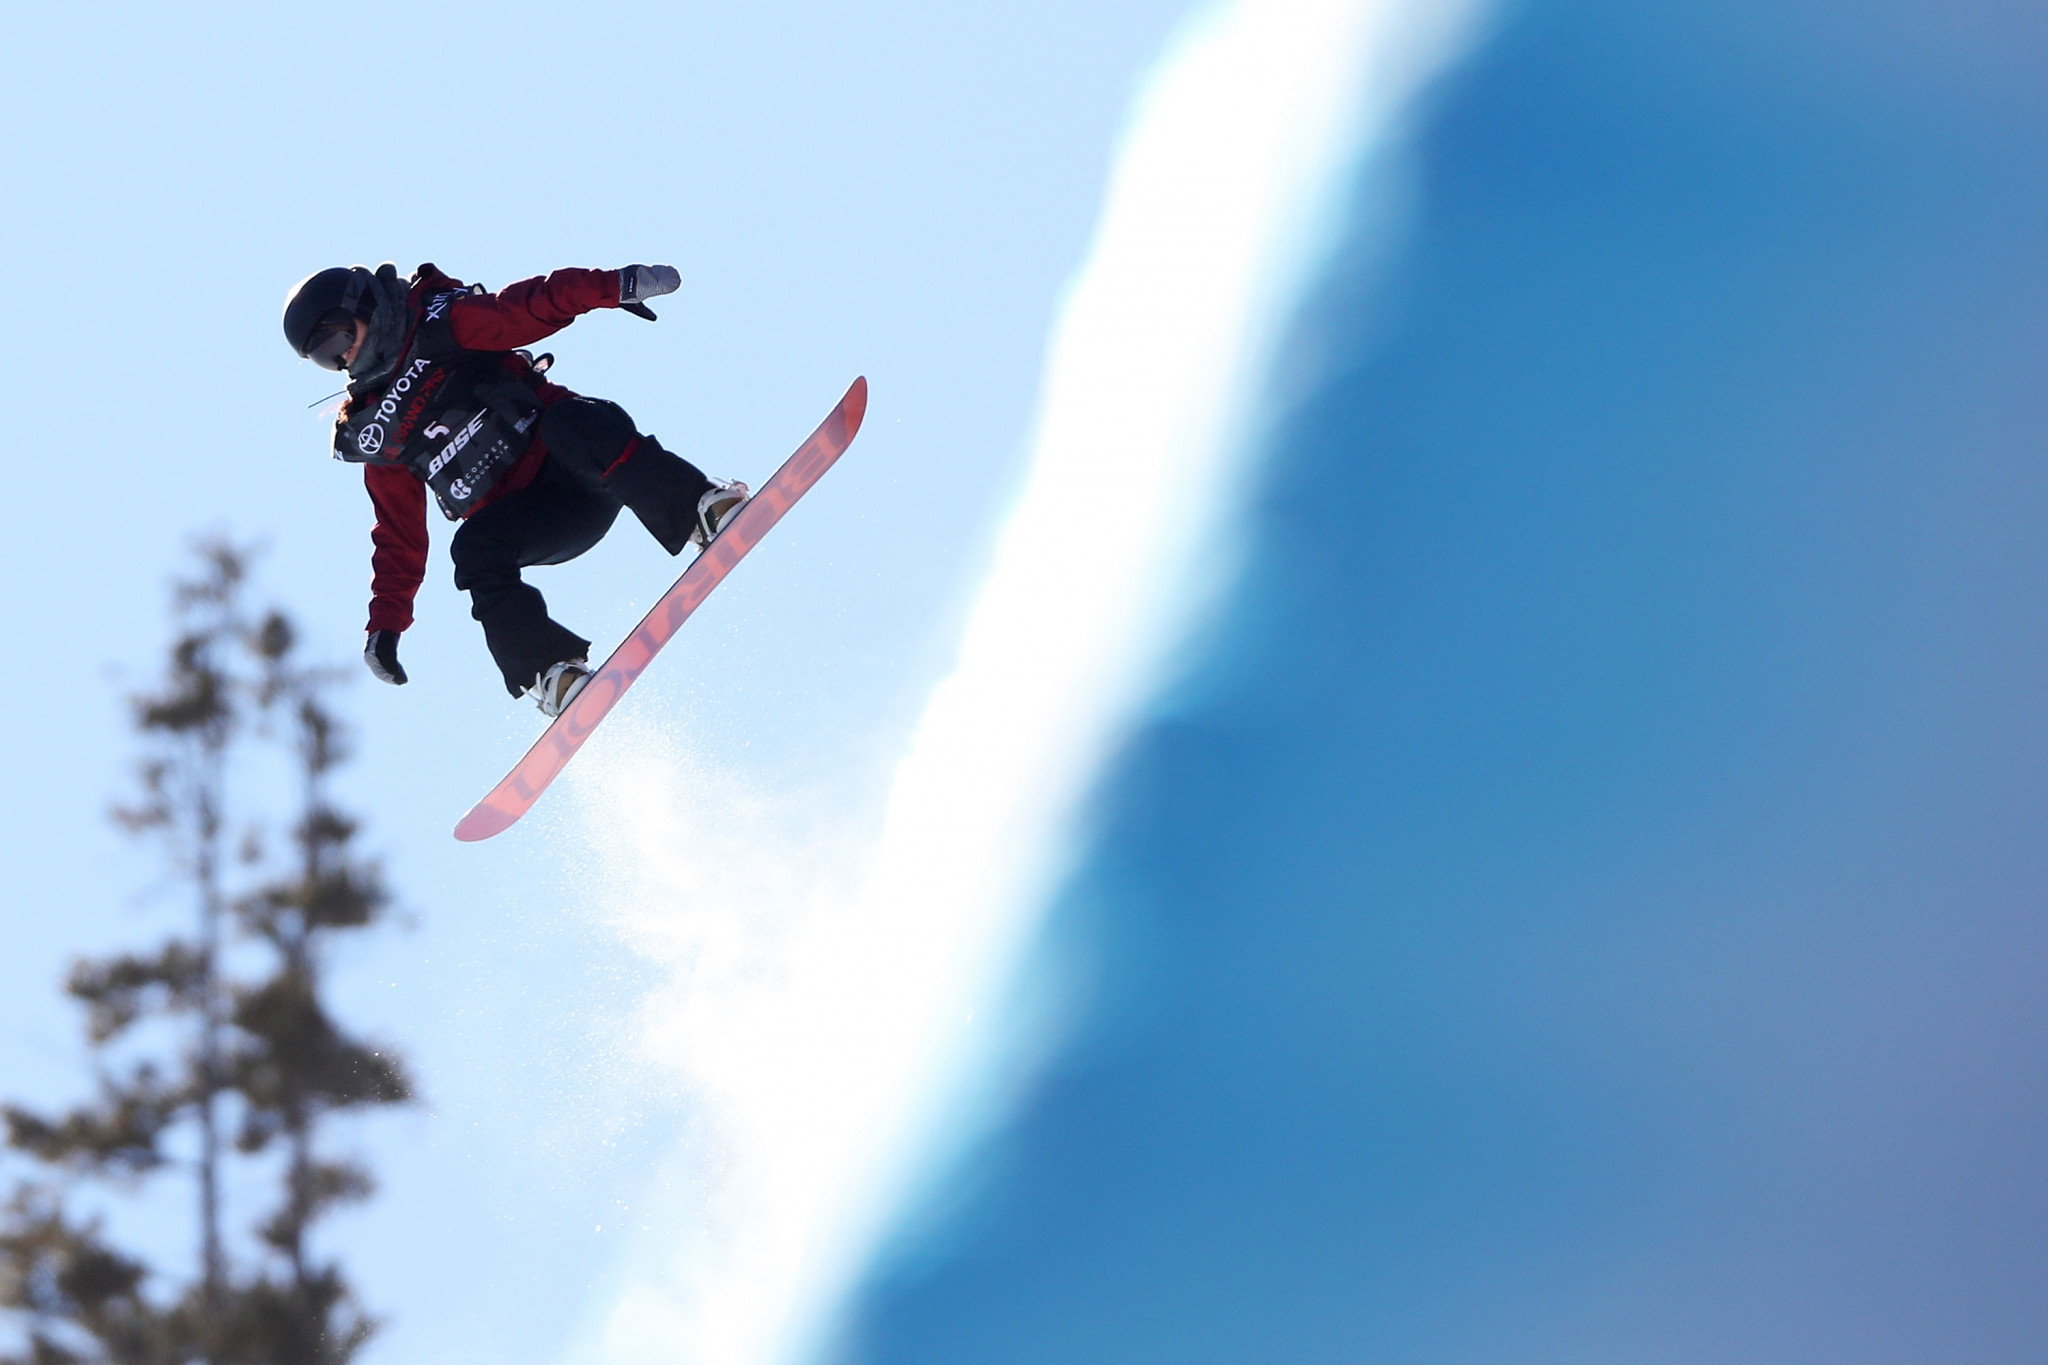 China star in halfpipe qualifying at Snowboard World Cup in Laax